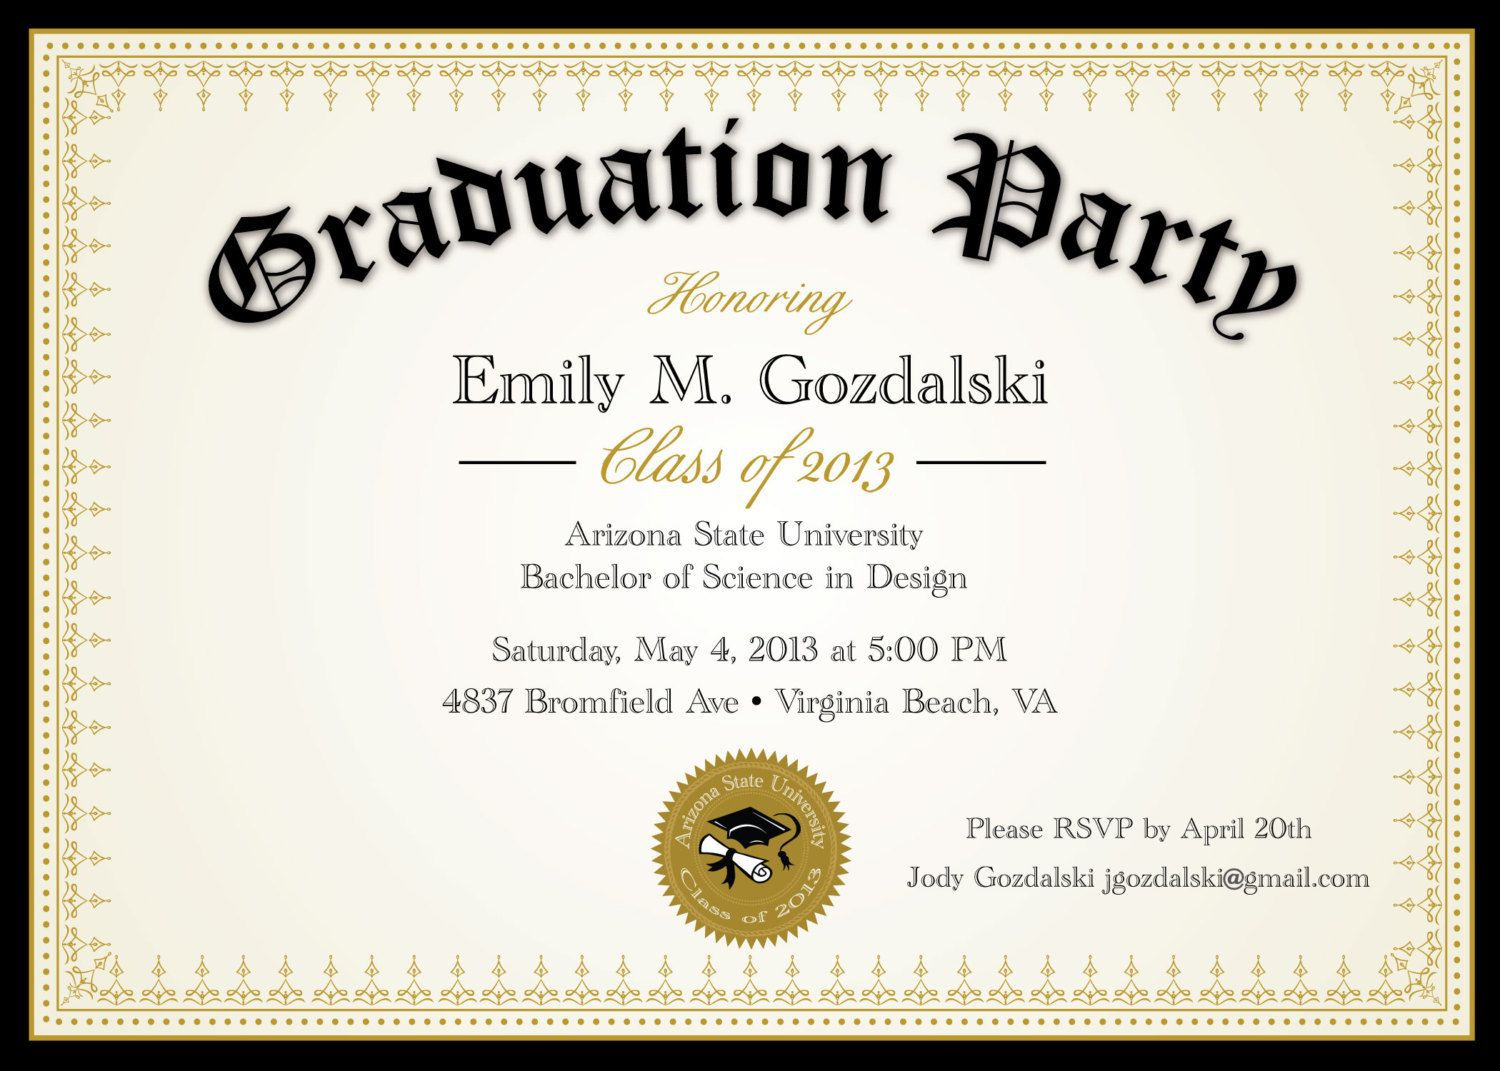 004 Awful College Graduation Party Invitation Template Highest Quality  TemplatesFull